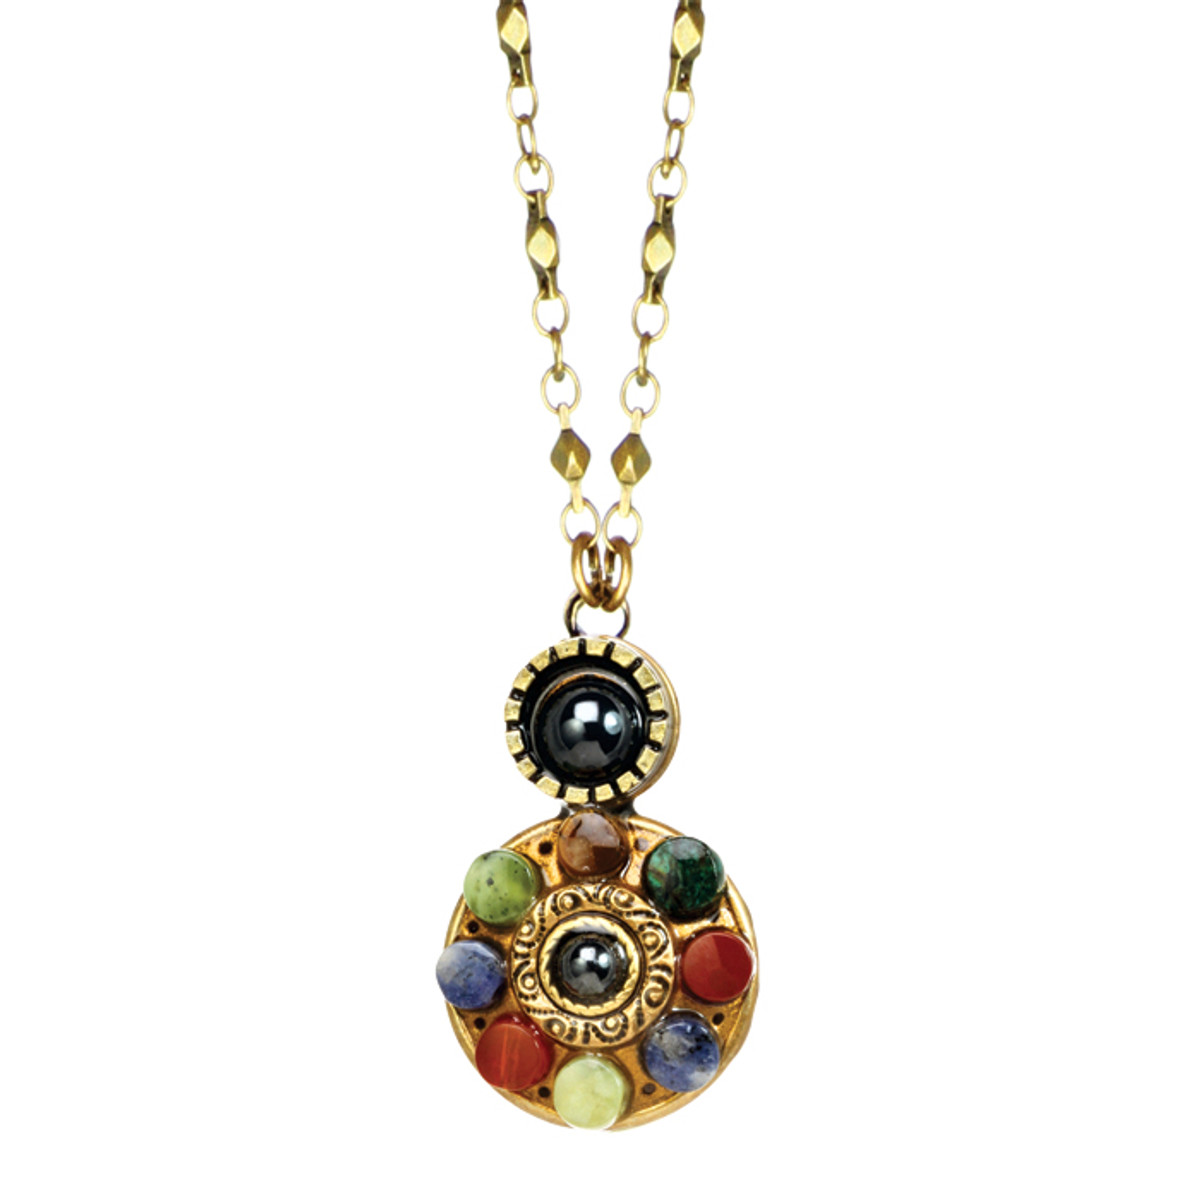 Michal Golan Necklace - Durango Double Round Pendant With Chain